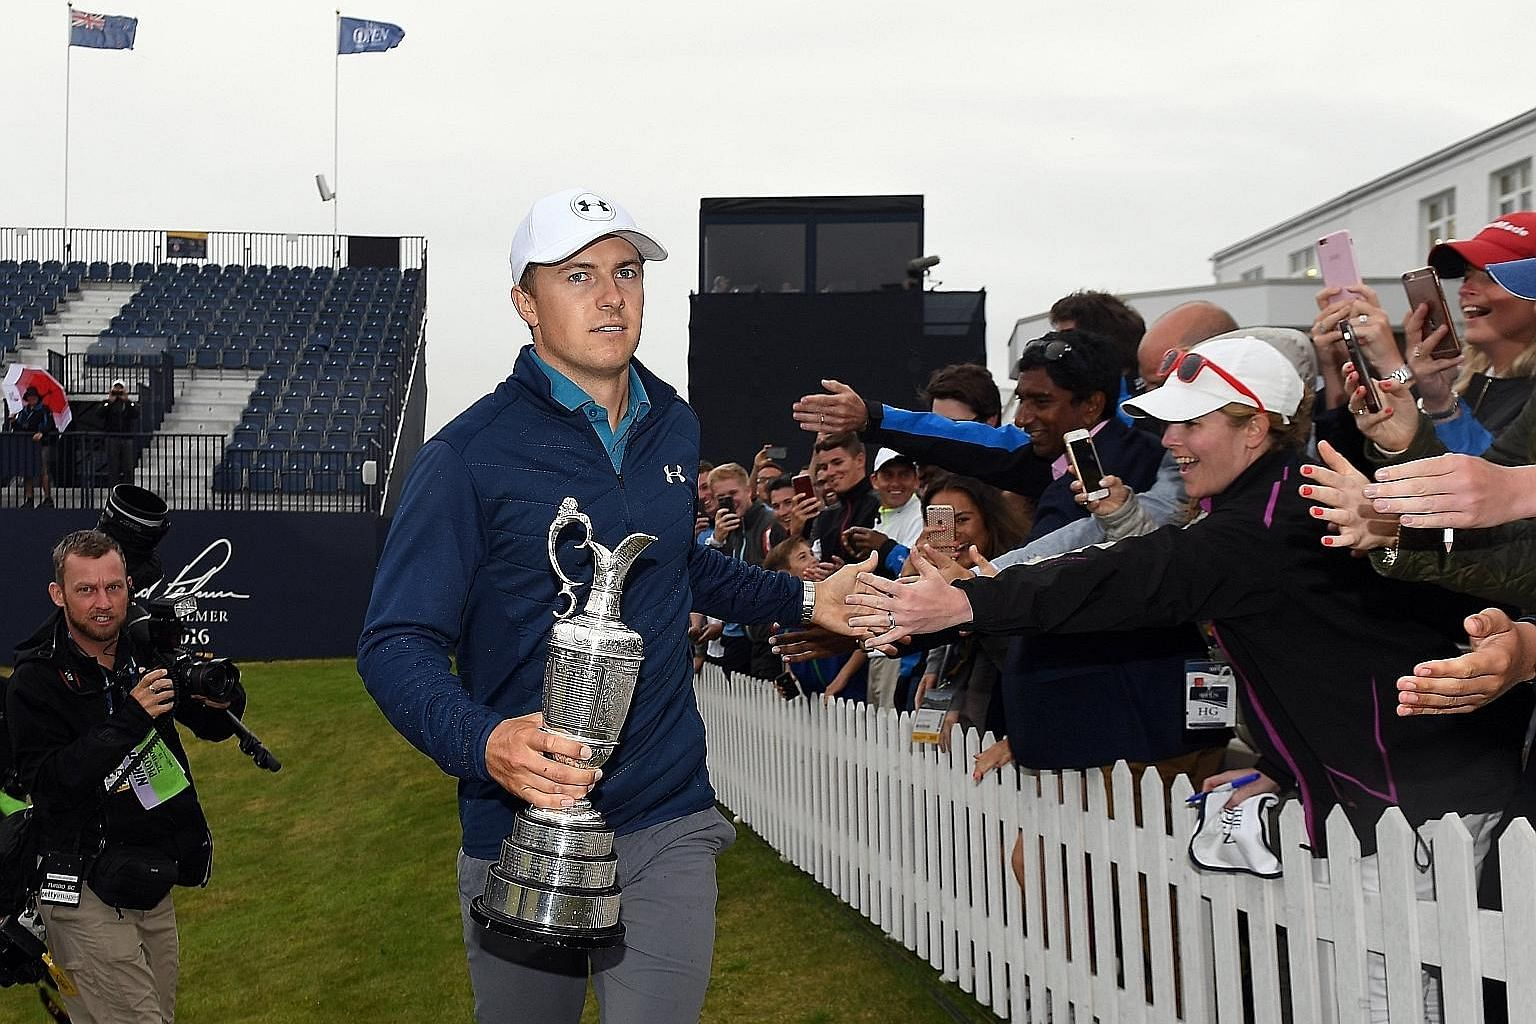 Jordan Spieth holding the Claret Jug and mingling with fans after winning the British Open at Royal Birkdale on Sunday.